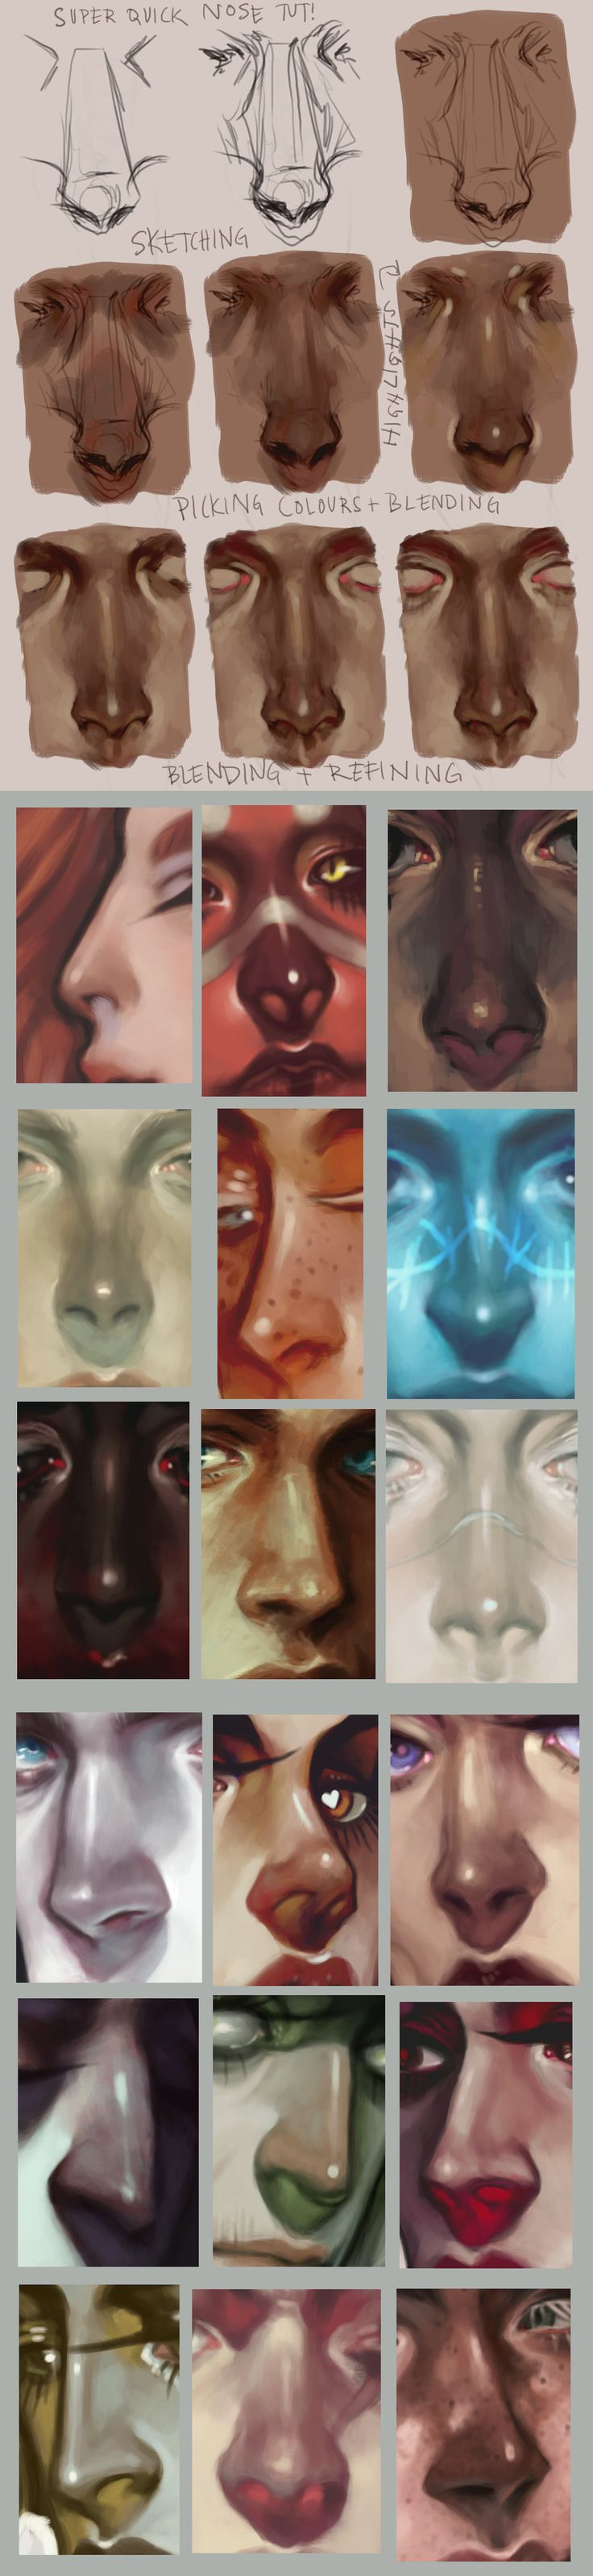 http://anatomicalart.tumblr.com/post/96059128524/harteus-super-quick-nose-painting-tutorial-a